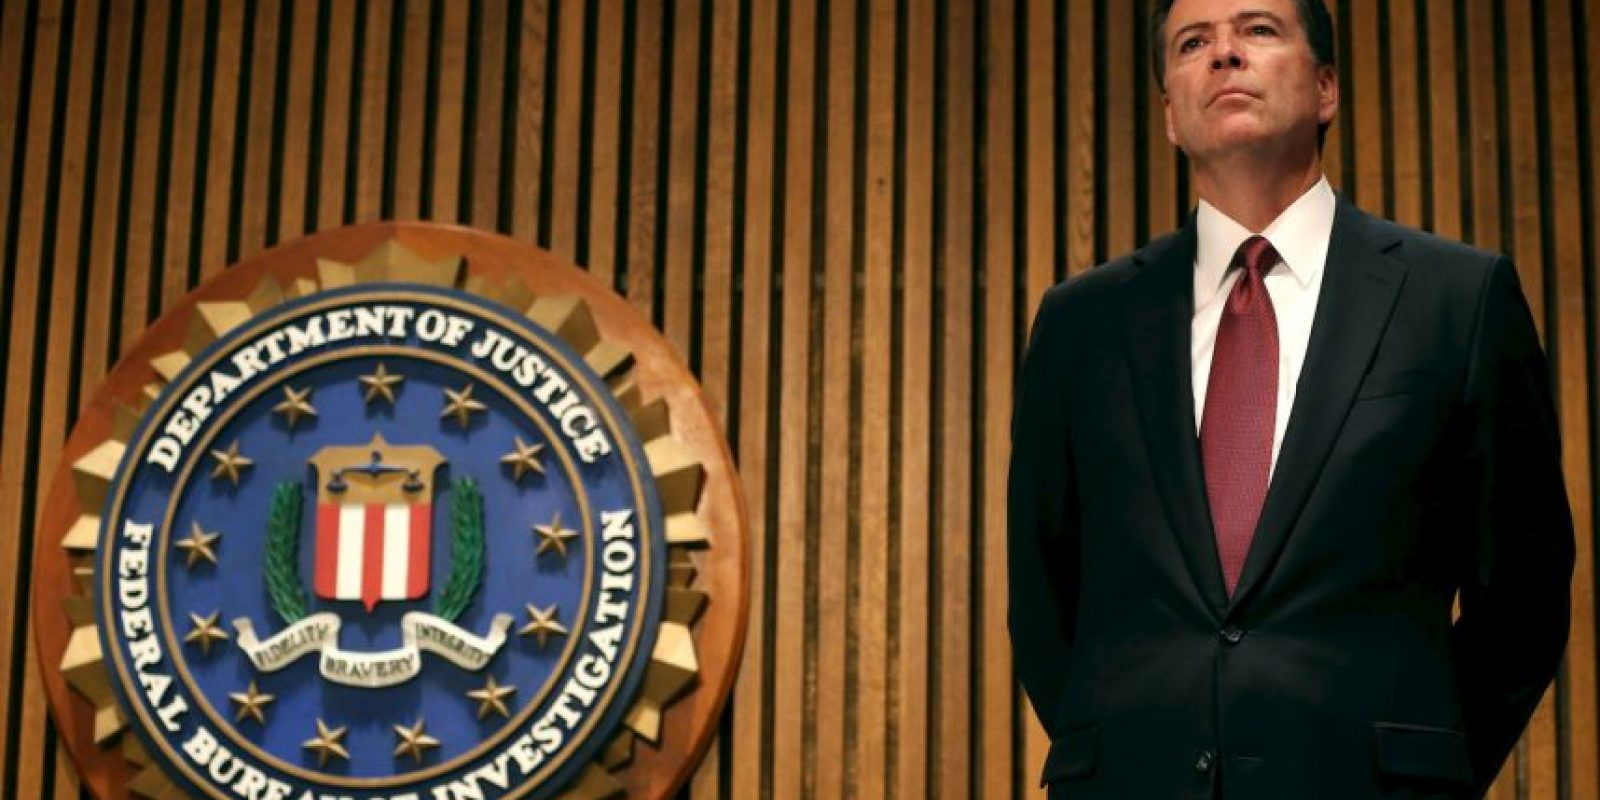 James B. Comey es el director del FBI, agencia que advirtió del ataque en Texas Foto: Getty Images